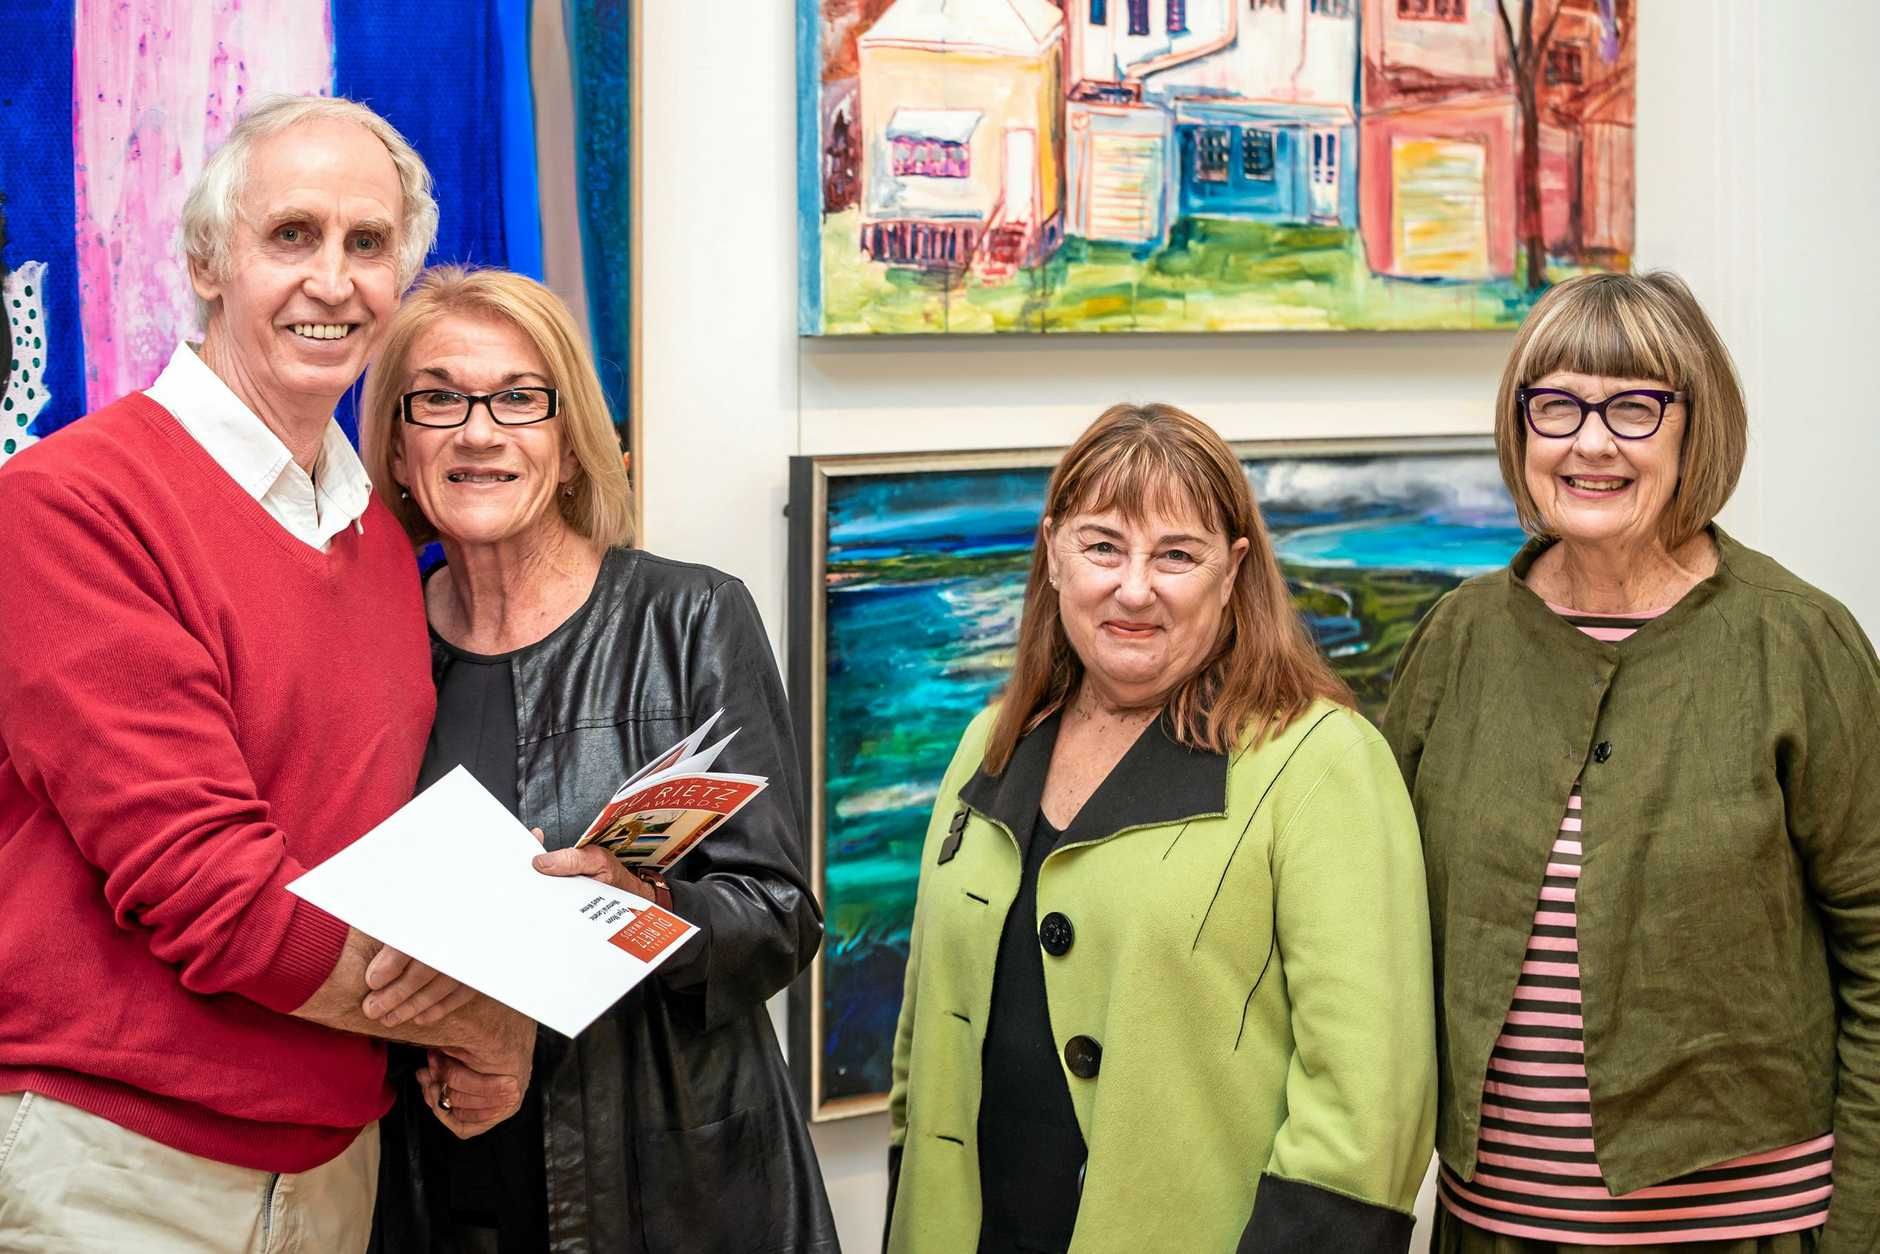 Winner Denis Forshaw with sponsor Gwyn Moore and judges Dr Victoria Garnors-Williams and Dr Susan Ostling.